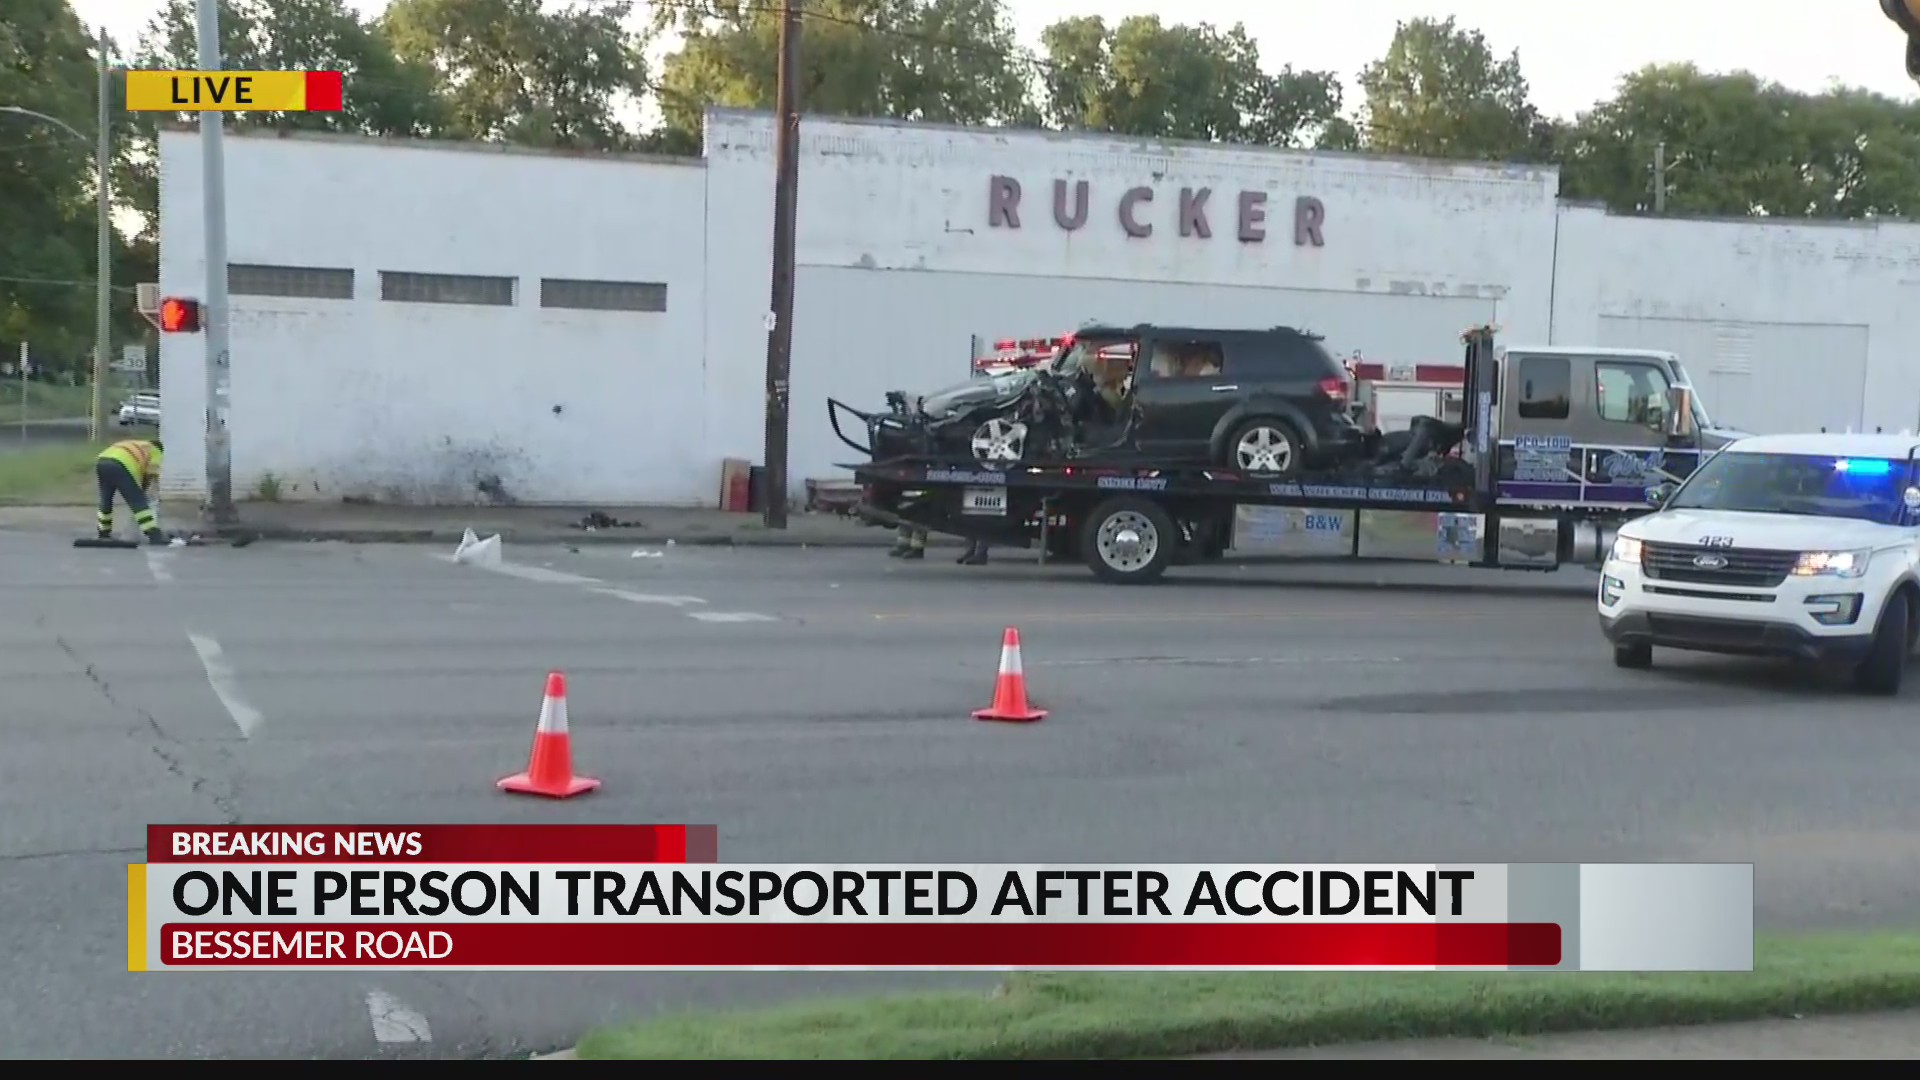 Driver sustains minor injuries after car accident | WIAT